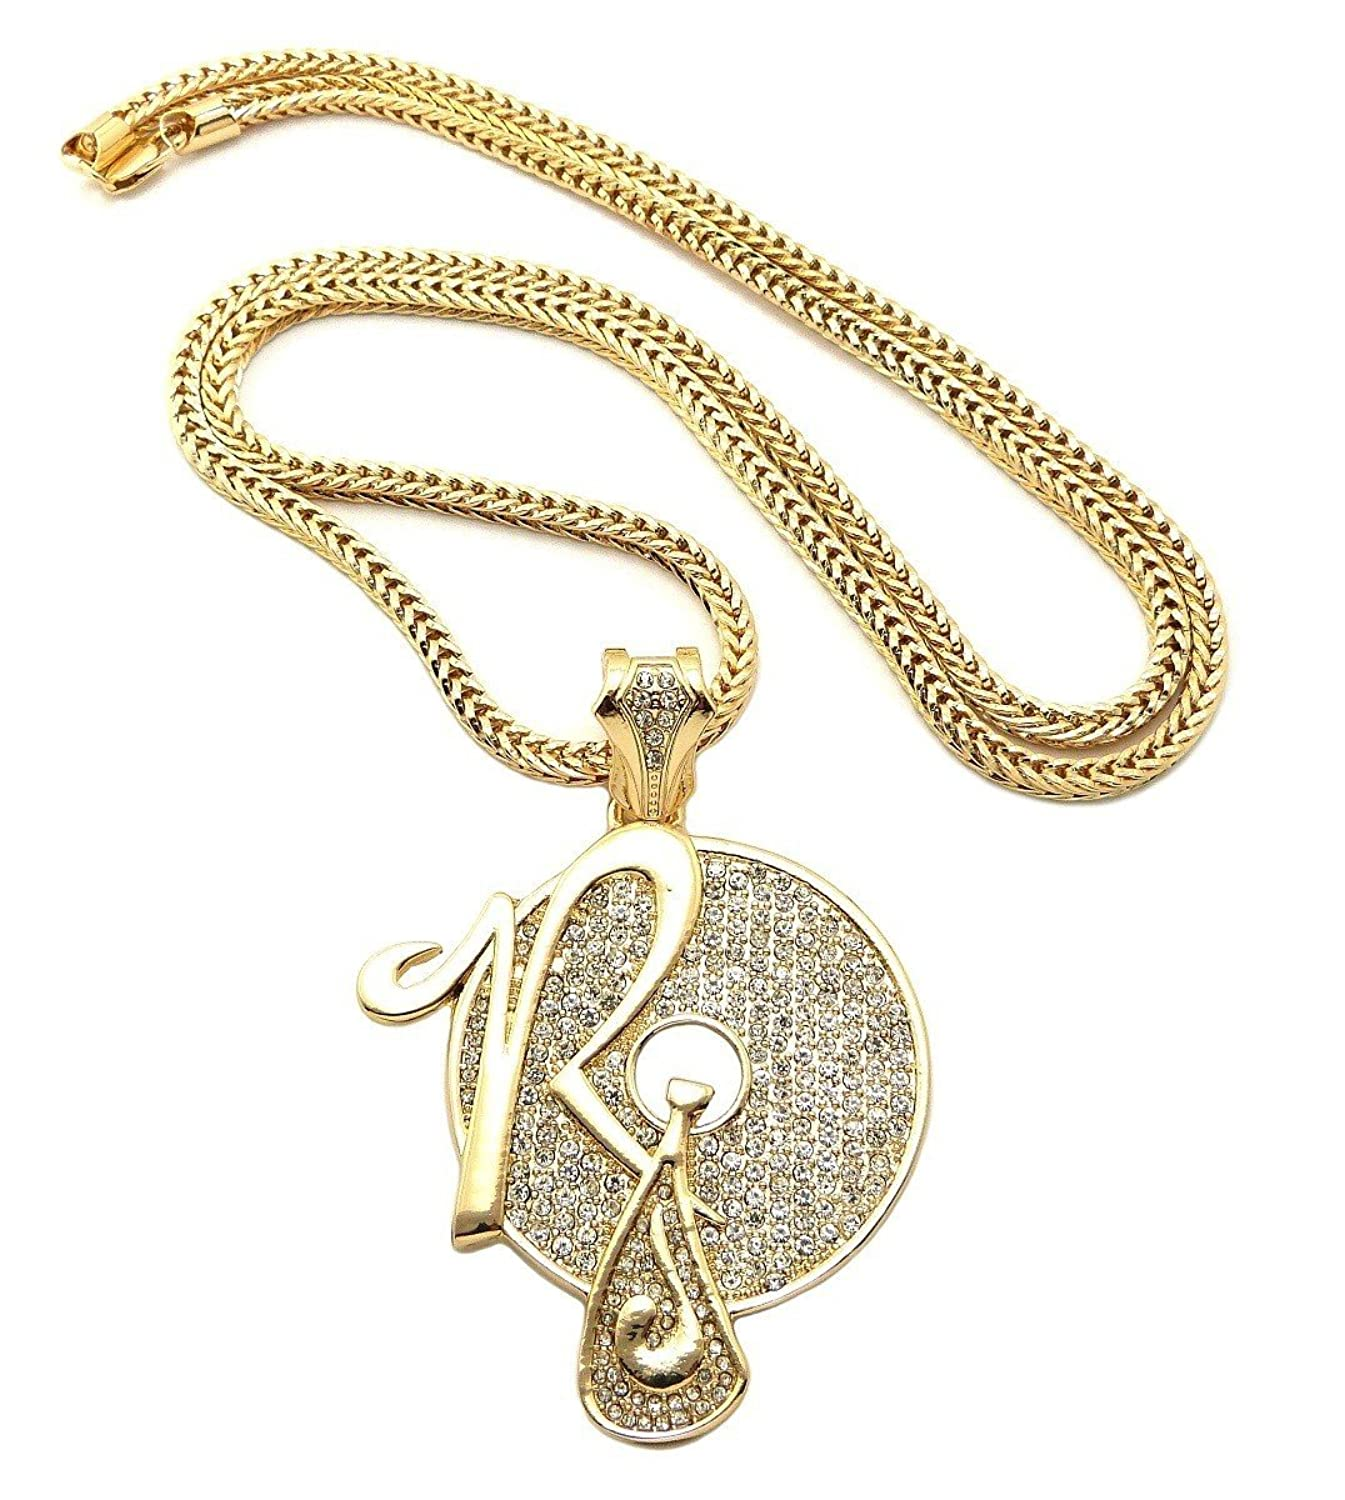 Amazon new iced out rocafella pendant 4mm36 franco chain hip amazon new iced out rocafella pendant 4mm36 franco chain hip hop necklace xp888g jewelry aloadofball Choice Image